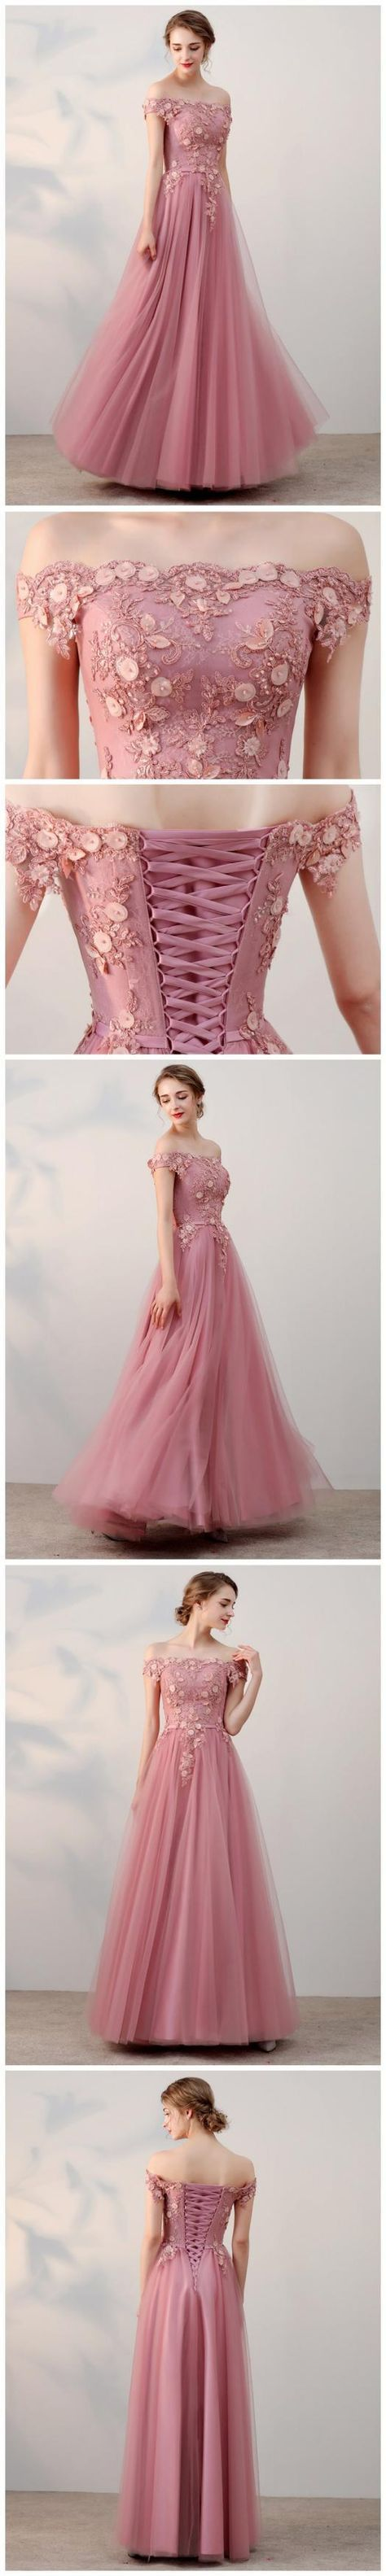 Chic A-line Off-the-shoulder Pink Applique Tulle Modest Long Prom Dress Evening Dress